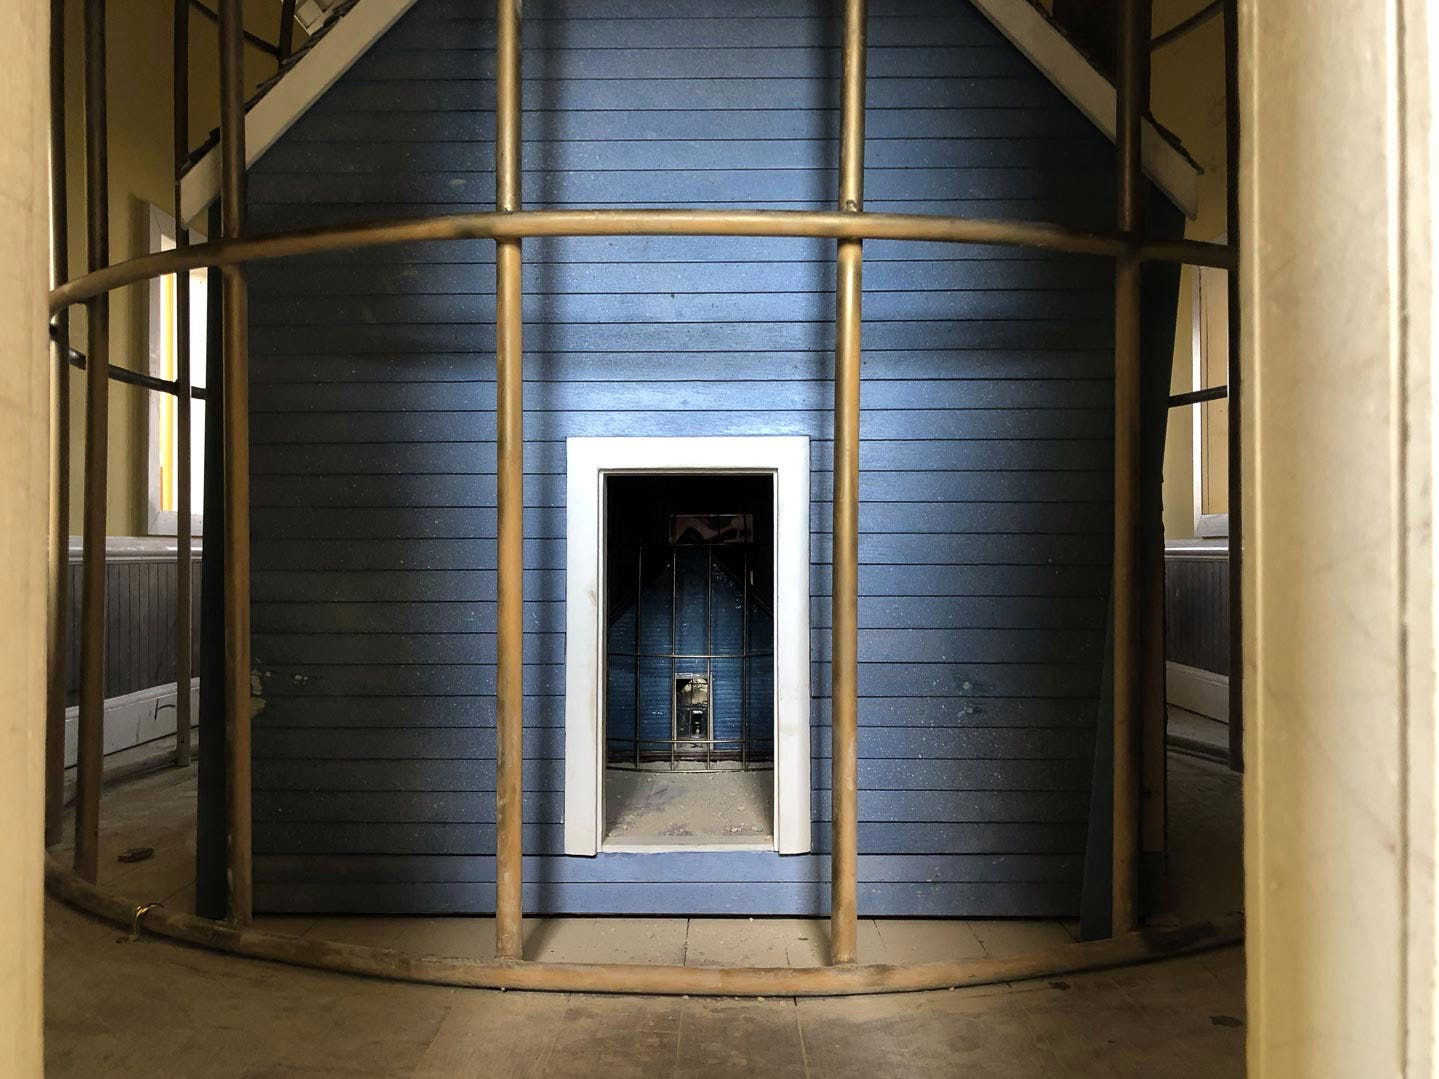 """""""Singularity"""" is a broken bird cage on the playa at Burning Man 2018. It has a house within a house within a house within a house within a house by Rebekah Waites and the Singularity Crew. People can walk inside and interact with the vintage elements, then walk inside the house again and find the same pieces until they can no longer enter the smallest house within."""